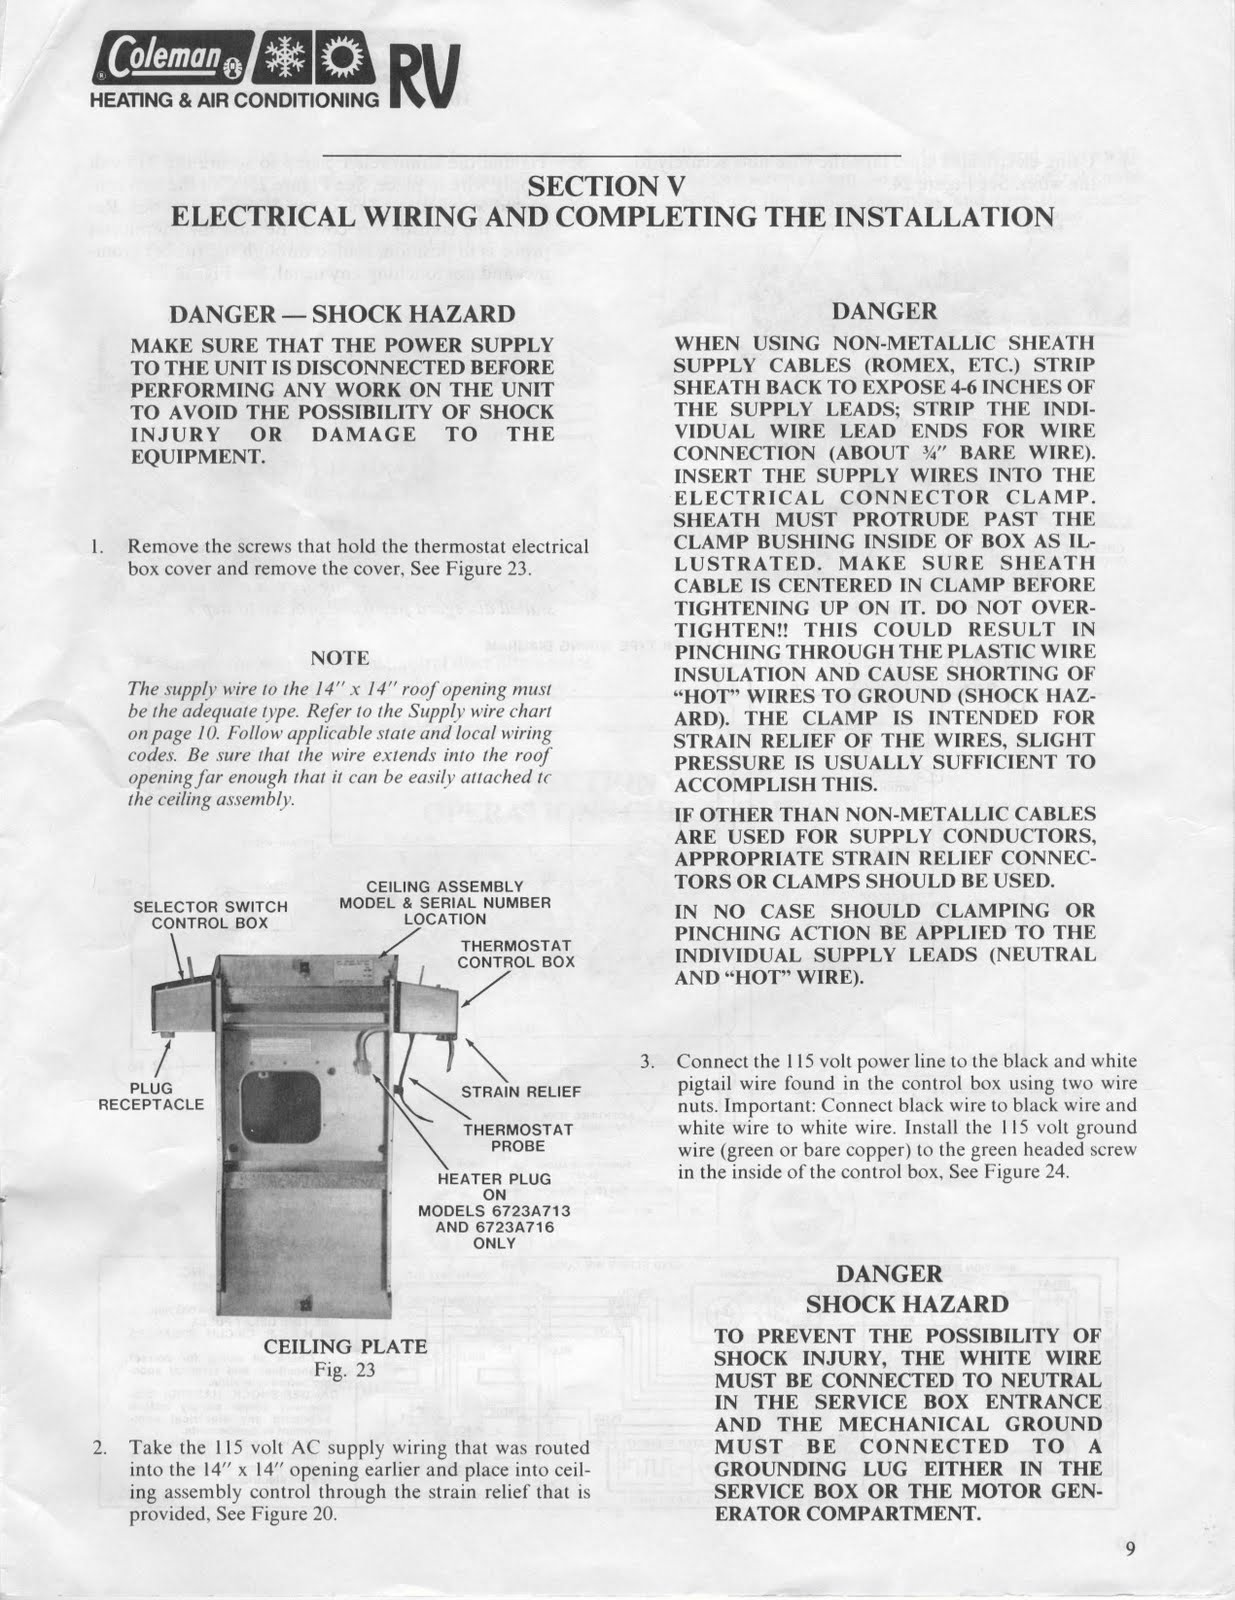 1983 Fleetwood Pace Arrow Owners Manuals Rv Air Conditioners Colemen 7 Wire Thermostat Wiring Diagram Posted By Vintage Travel Trailers At 733 Am